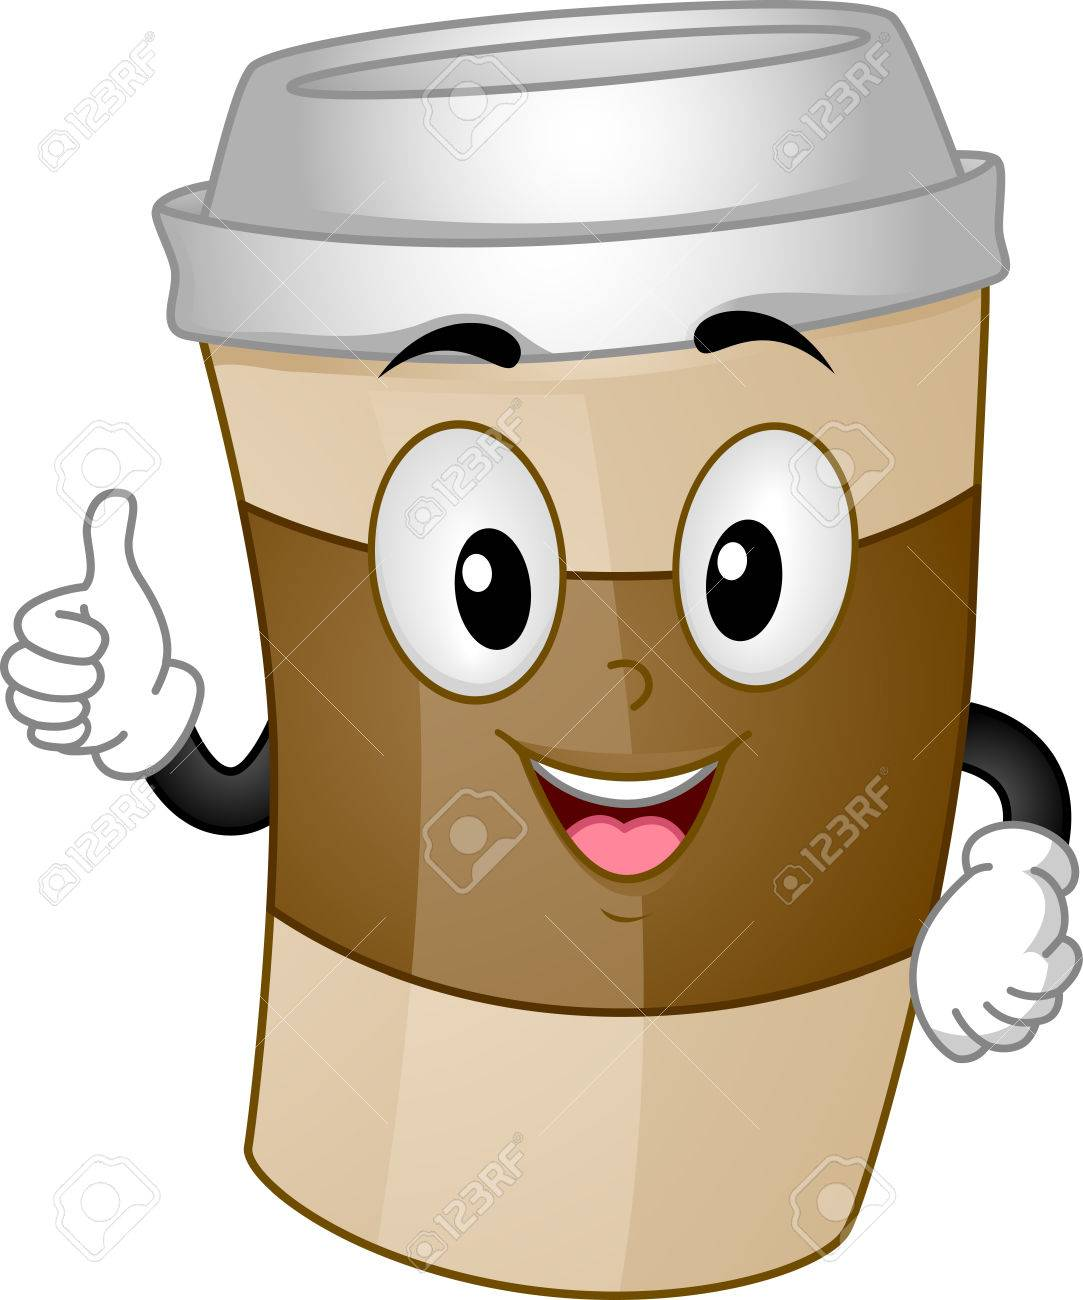 1083x1300 Mascot Illustration Of Cup Of Coffee For Take Out Giving